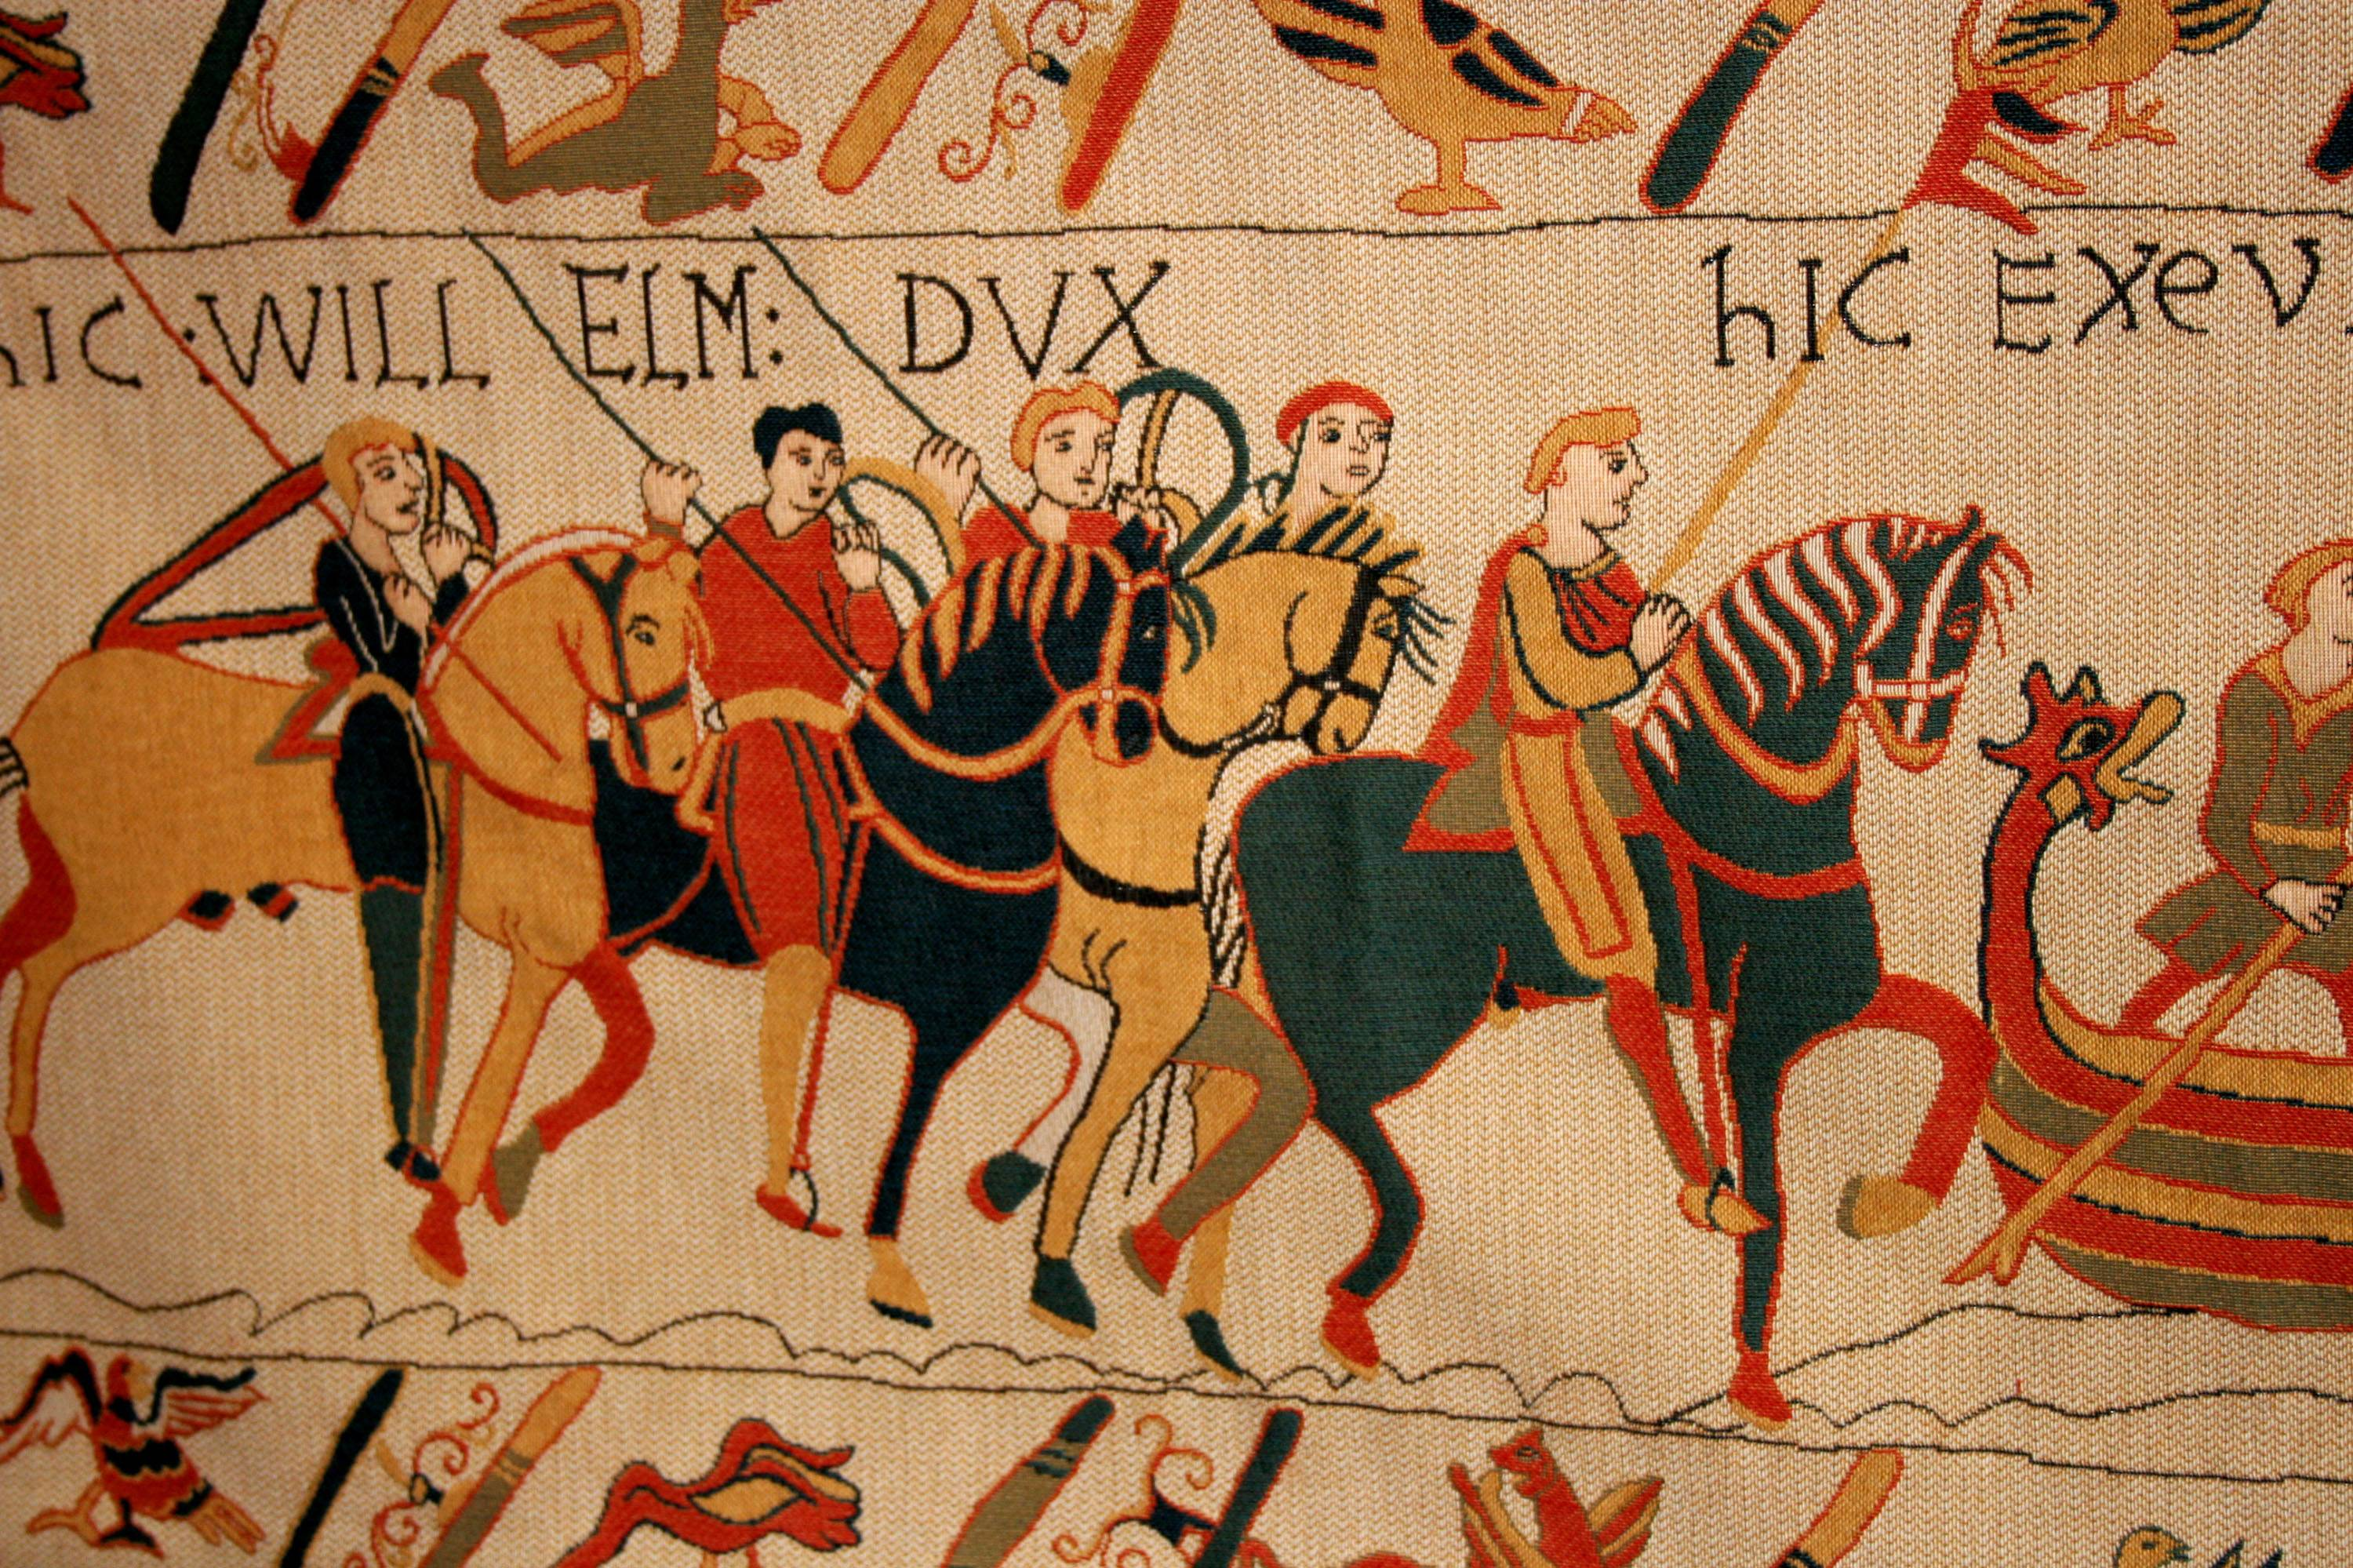 The nearly 1,000-year-old treasure, the Bayeux Tapestry, which is actually more of an embroidered scroll, depicts the story of how William, the duke of Normandy, became king of England.